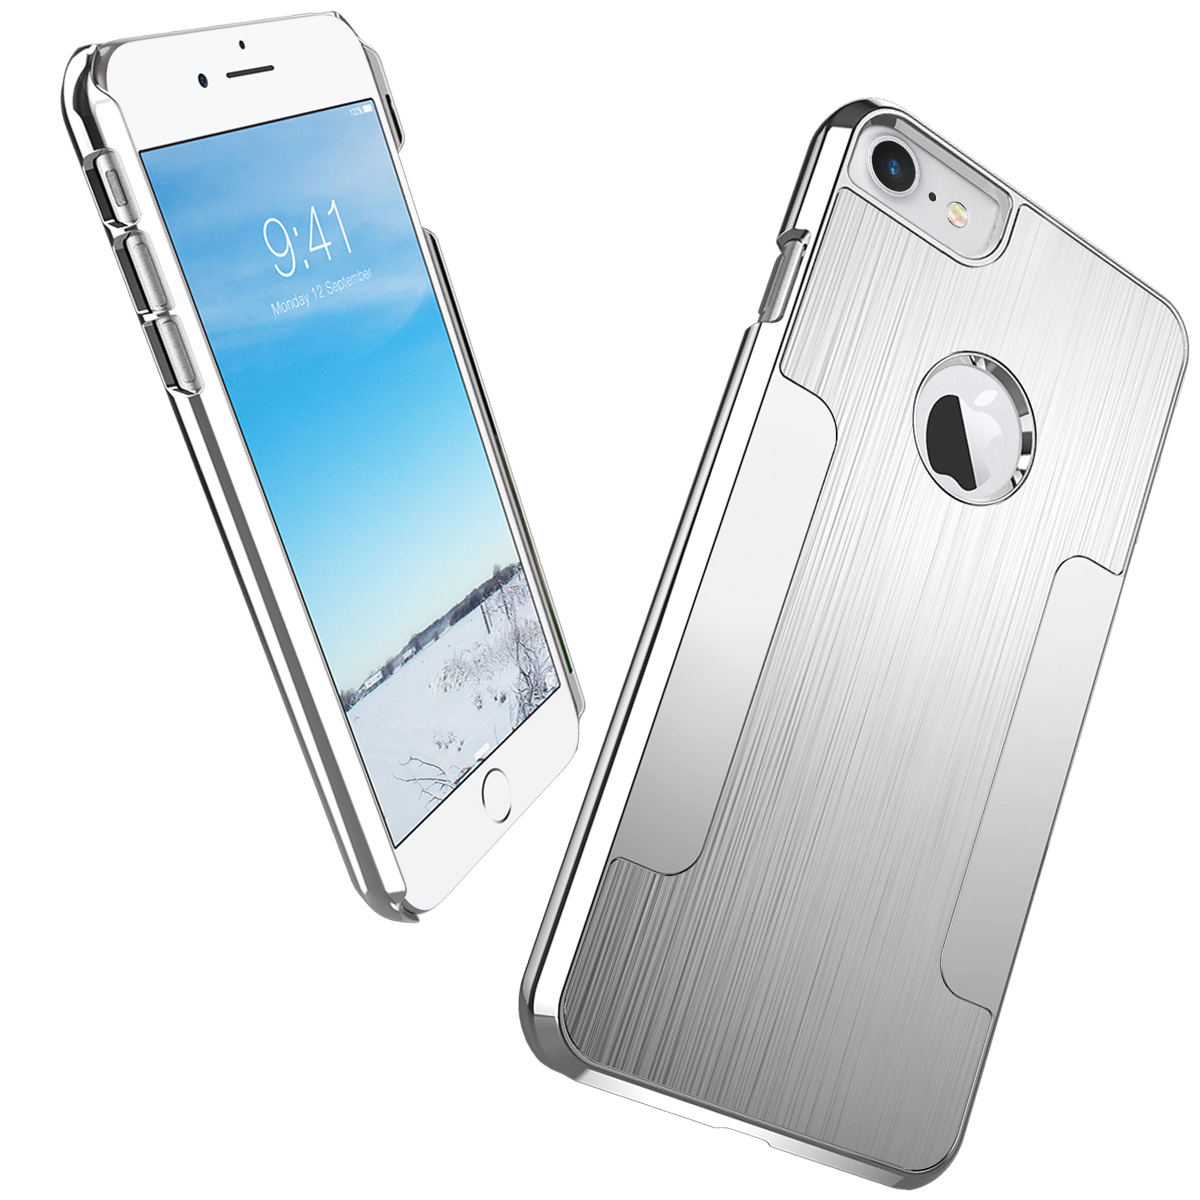 iPhone 7 Case, ULAK Slim Brushed Aluminum Chrome Coating Hard Case With PC Cover for iPhone 7 4.7 inch 2016